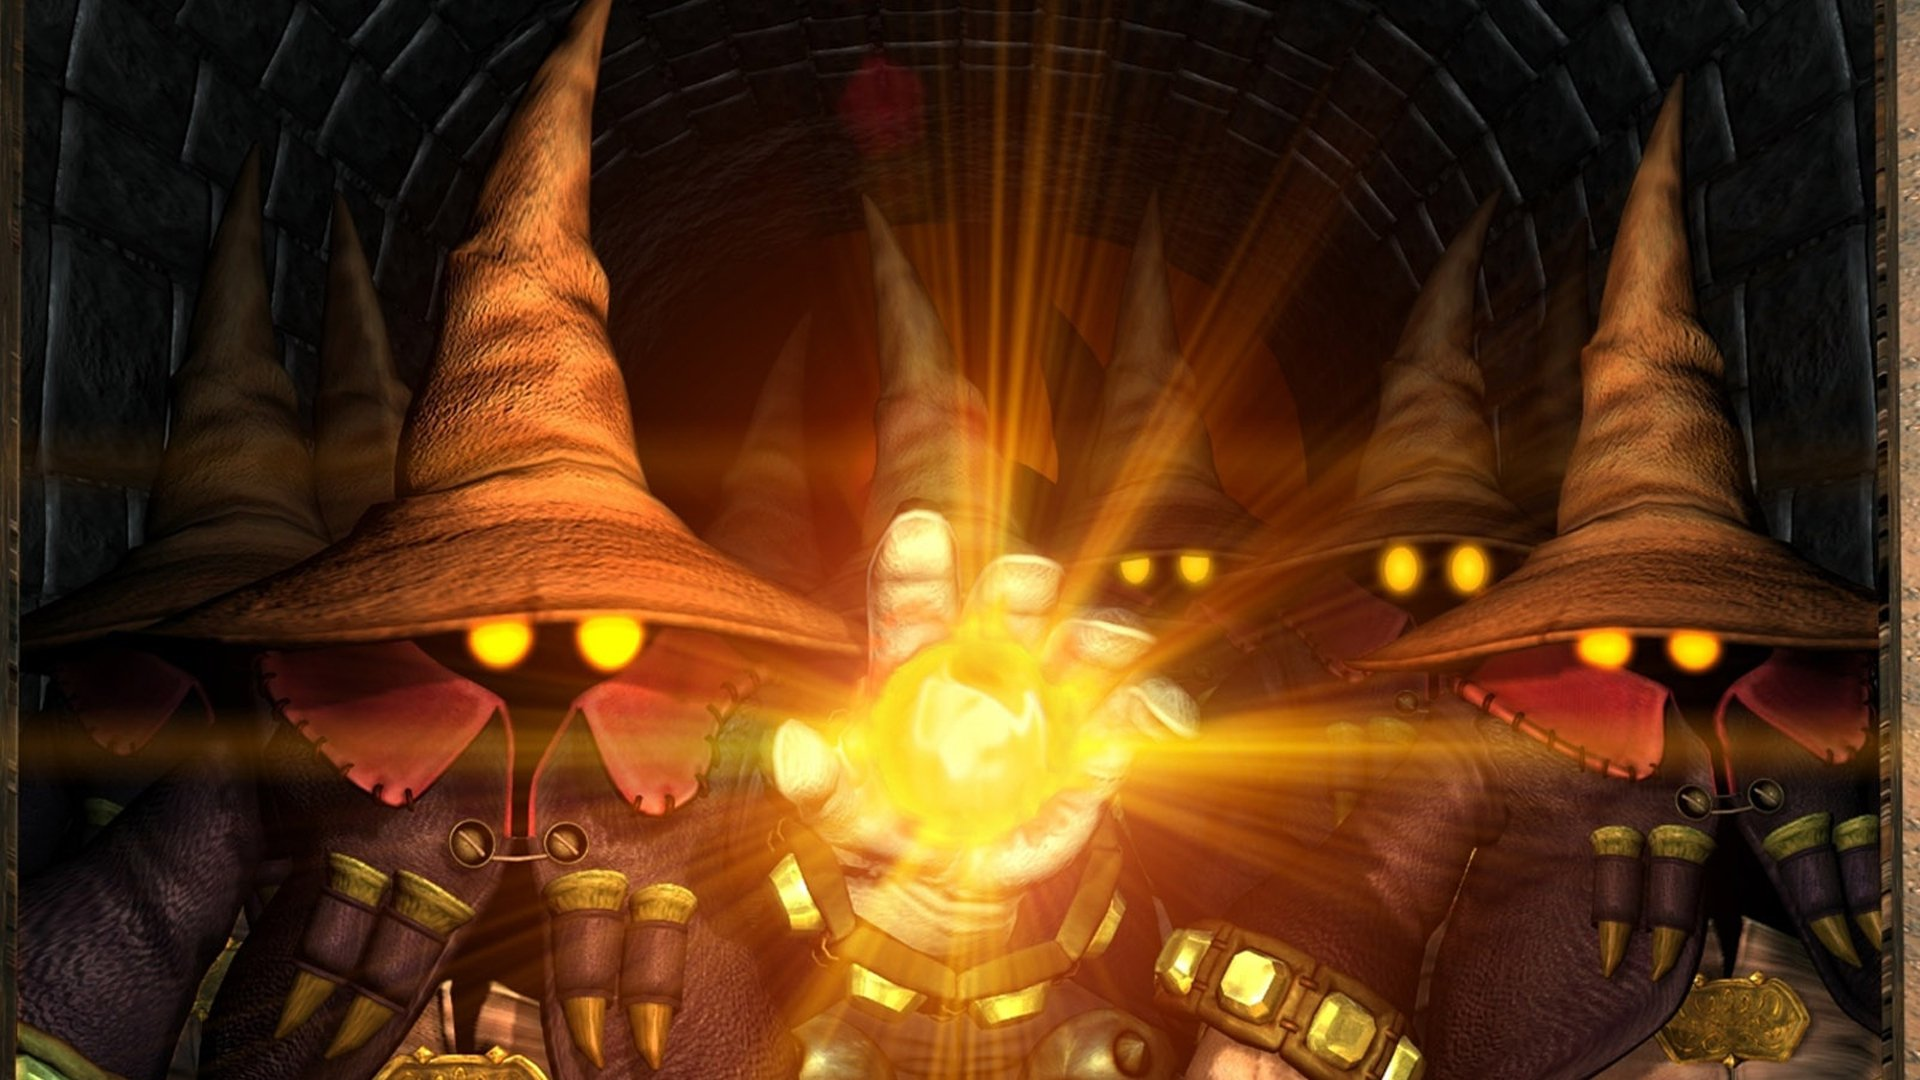 Final Fantasy Ix Hd Wallpaper Background Image 1920x1080 Id